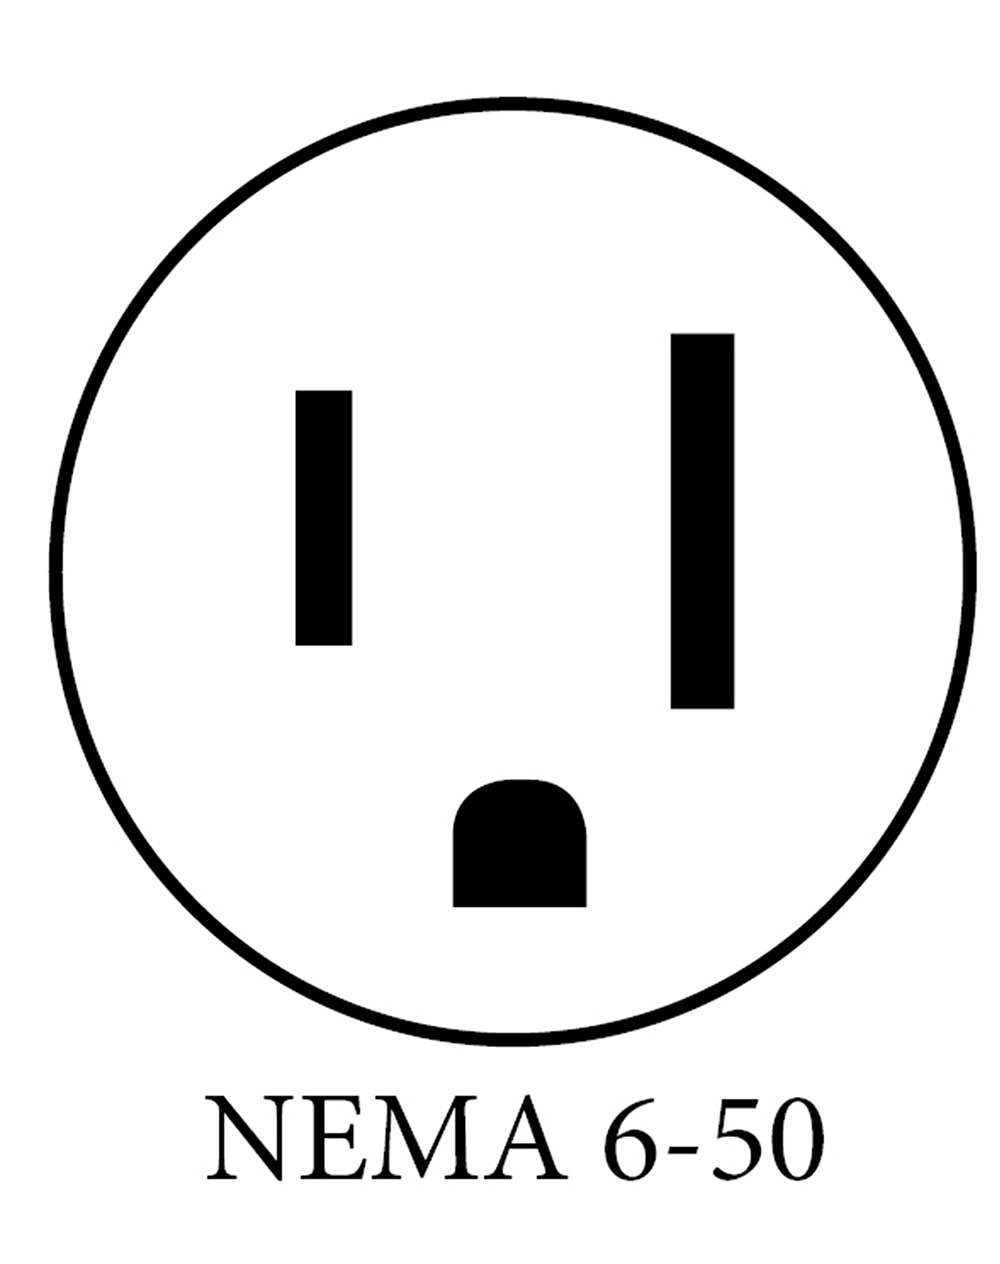 nema 6 50r wiring diagram 25 wiring diagram images With nema 6 50 wiring